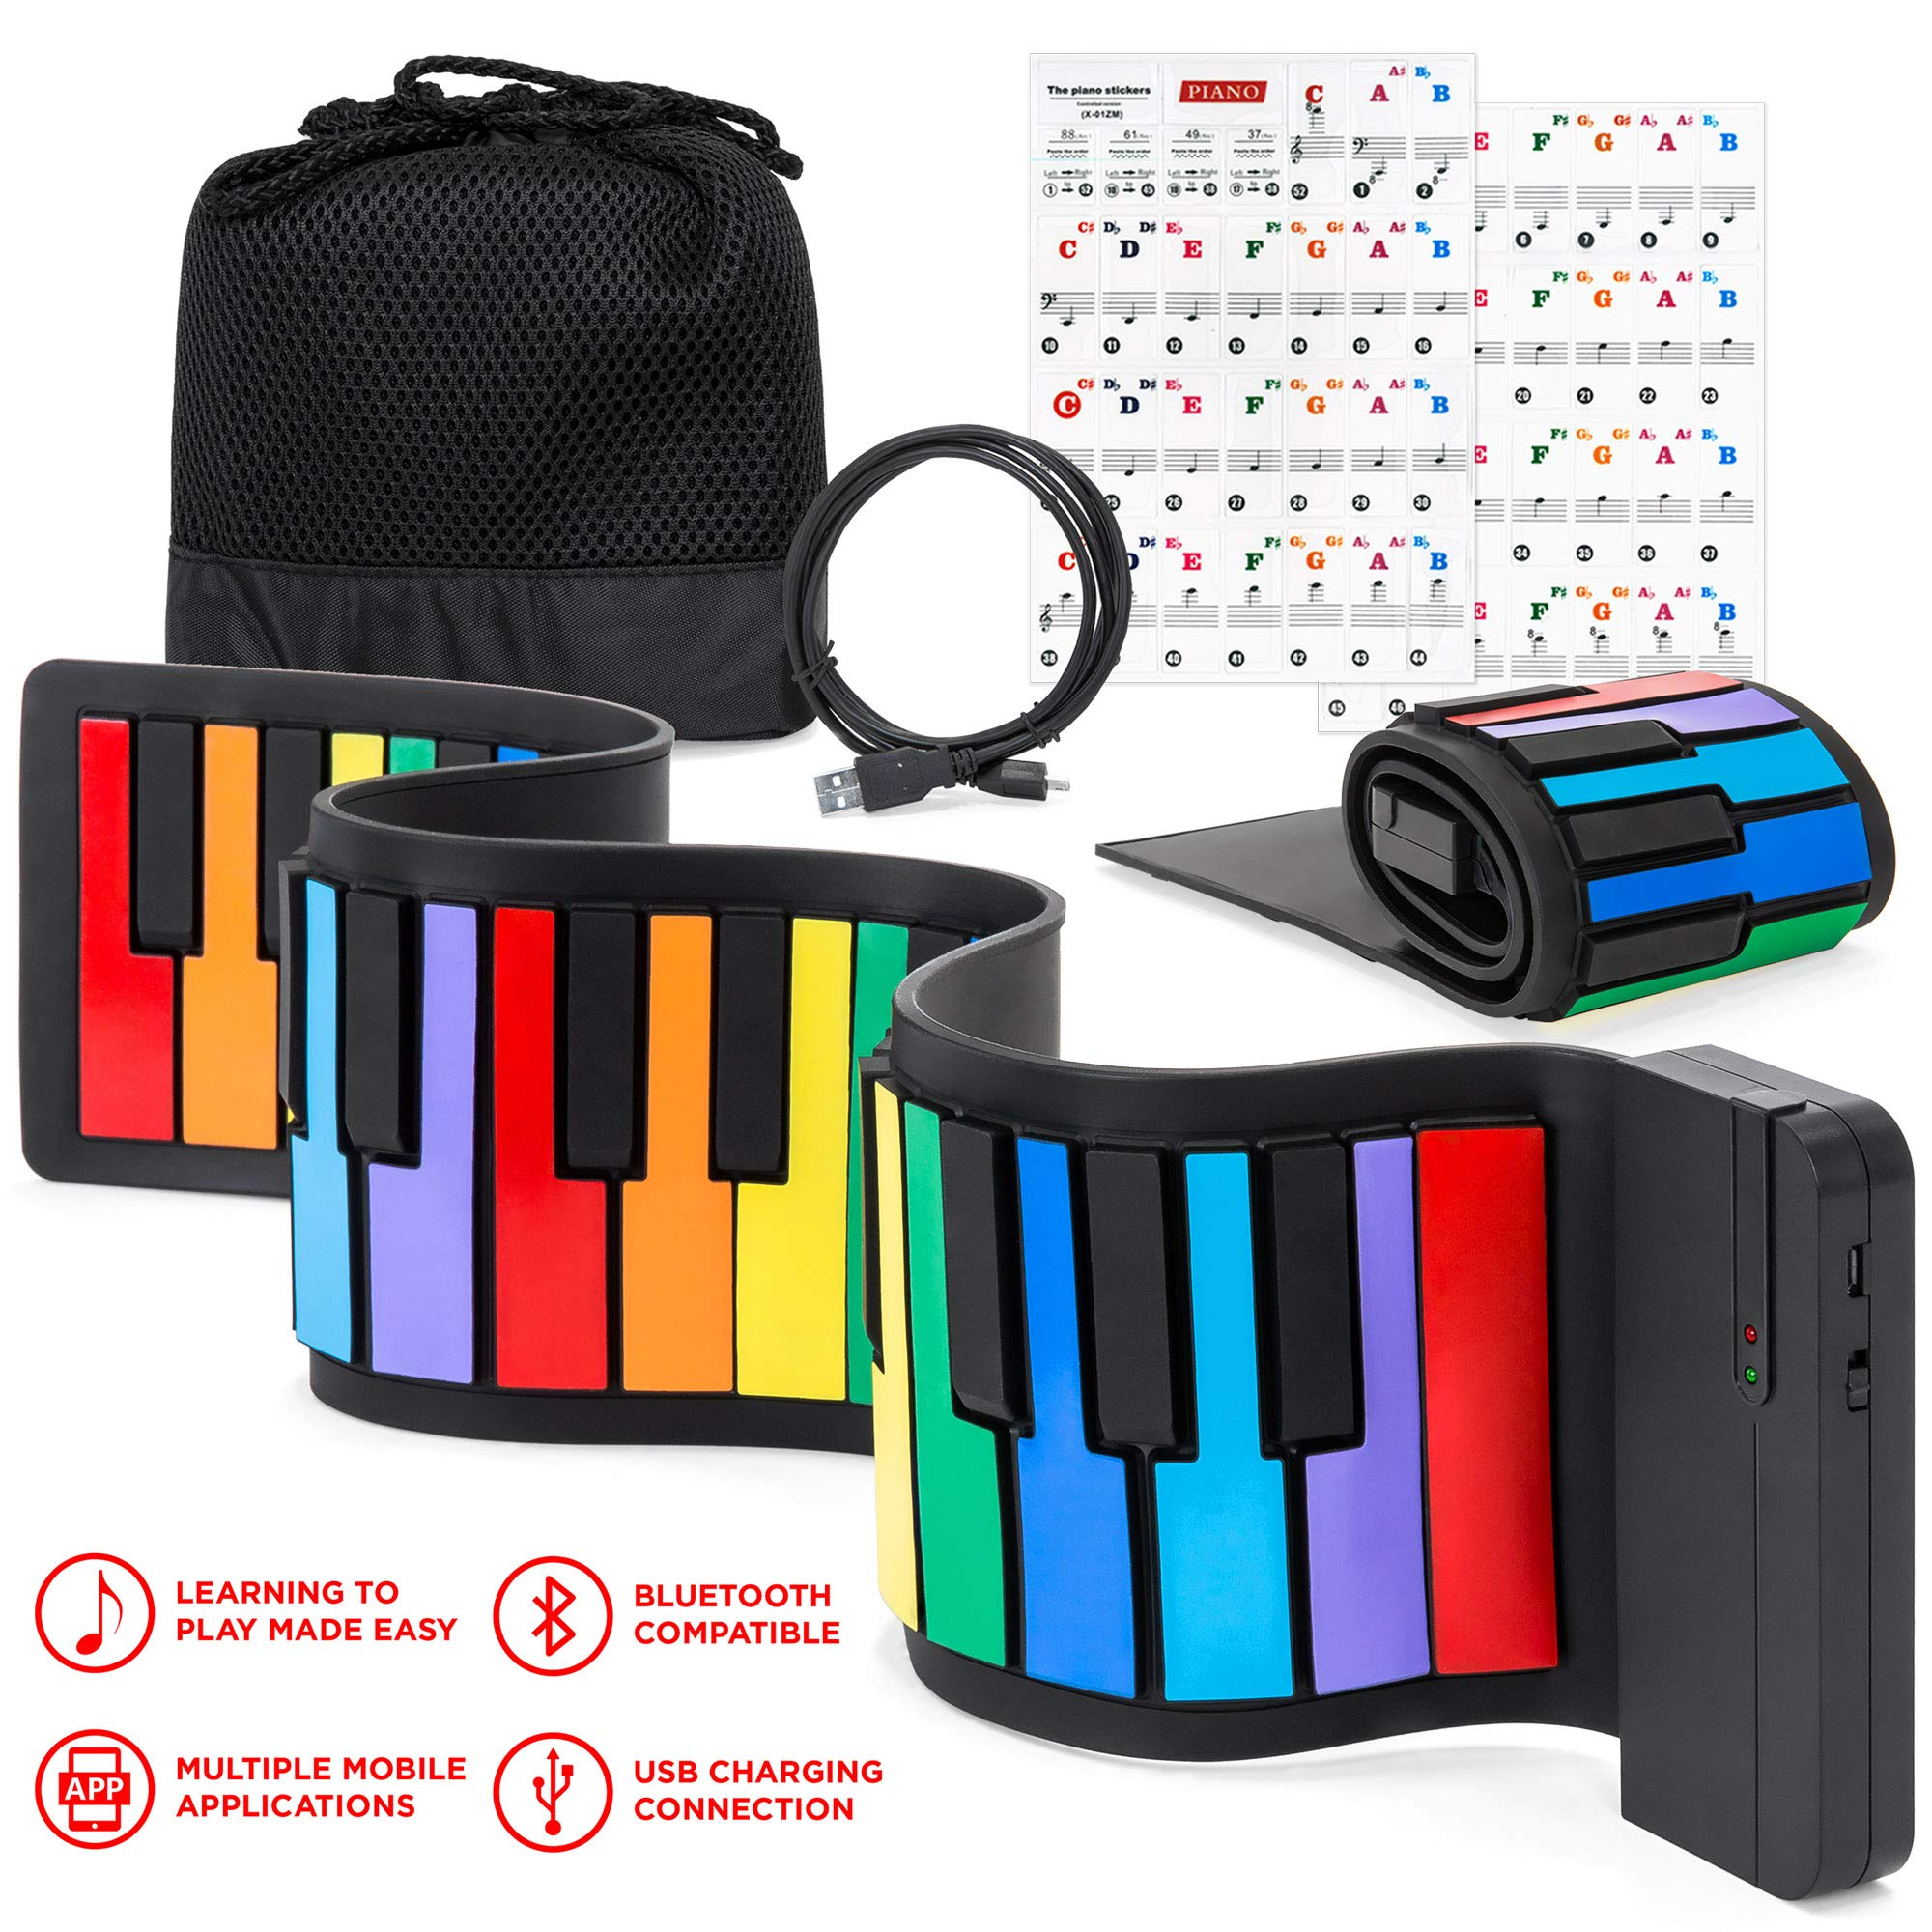 Best Choice Products Kids 49-Key Portable Flexible Roll-Up Piano Keyboard Toy with Learn-To-Play App Game, Bluetooth Pairing, Note Labels (Rainbow)